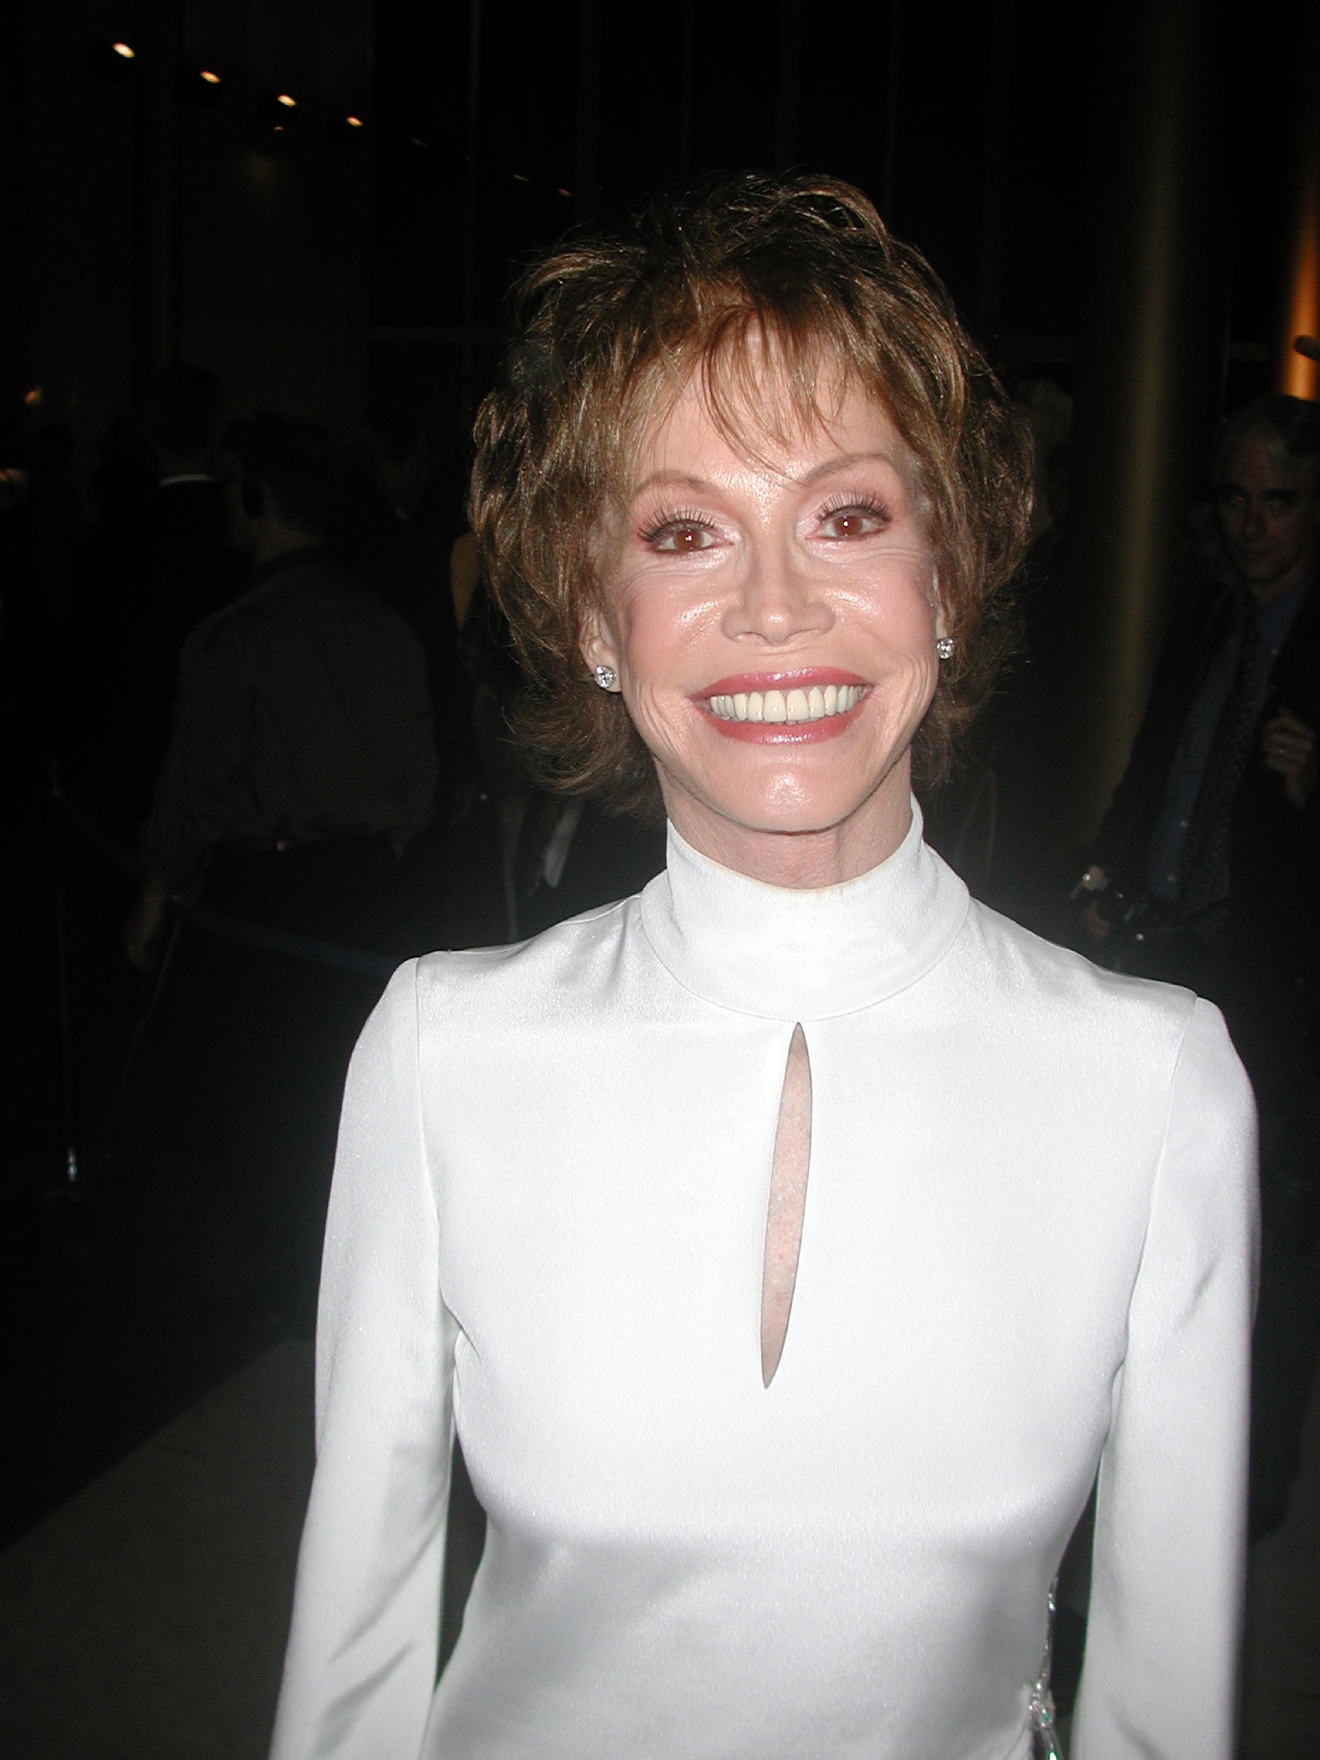 Mary Tyler Moore USA - 01.01.192  Featuring: Mary Tyler Moore Where: United States When: 01 Jan 1992 Credit: Jeff Grossman/WENN